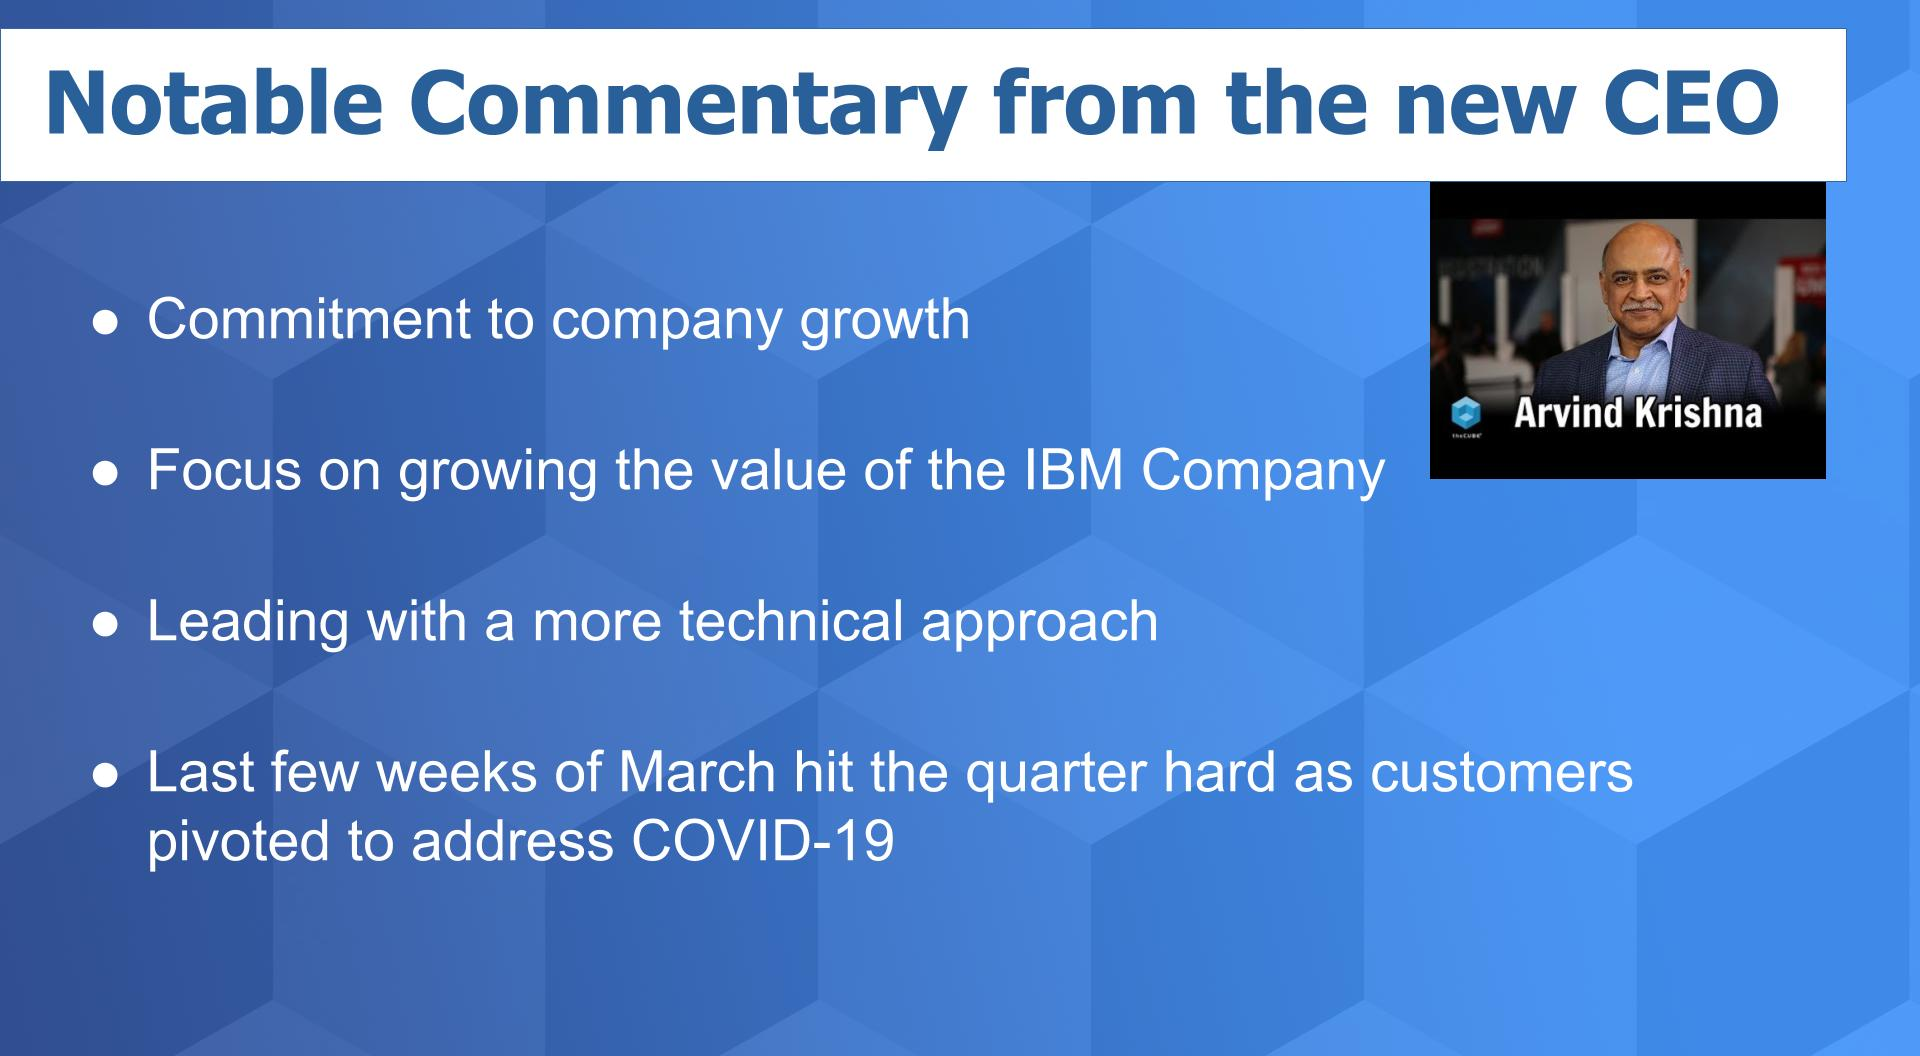 Breaking Analysis: IBM's Future Rests on its Innovation Agenda